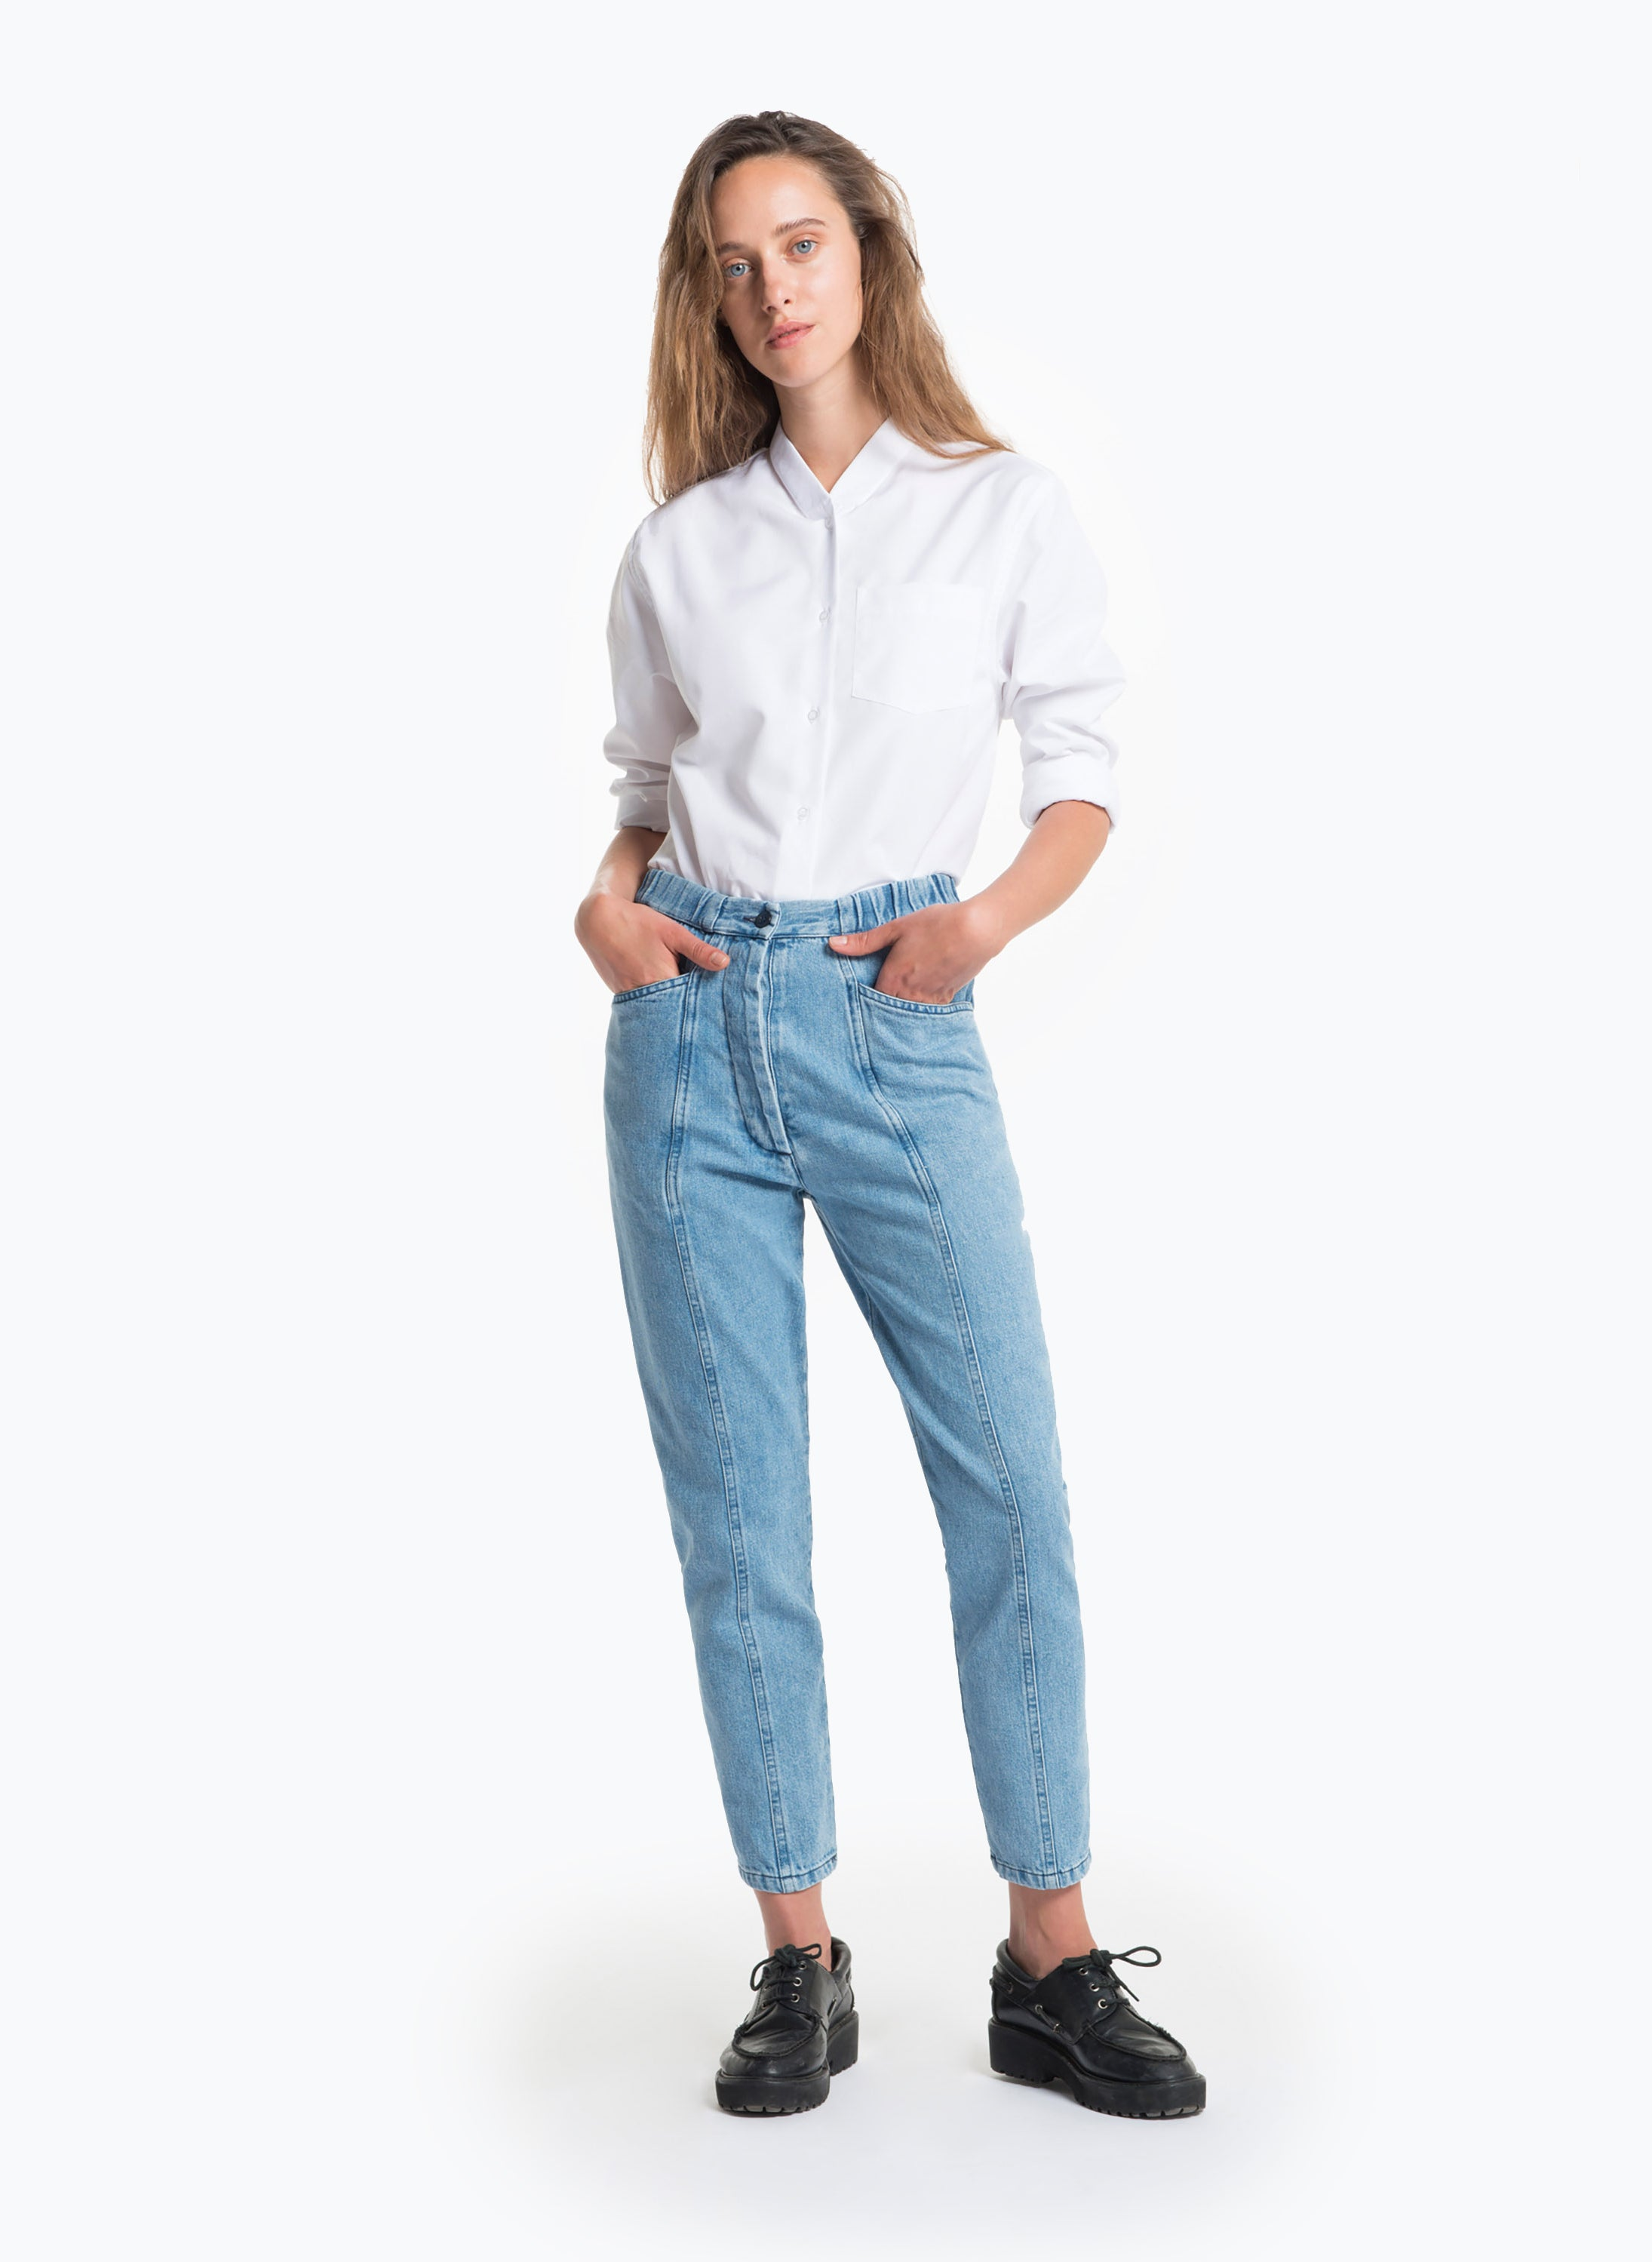 5-Pocket Pants with Front Cuts in Bleached Denim